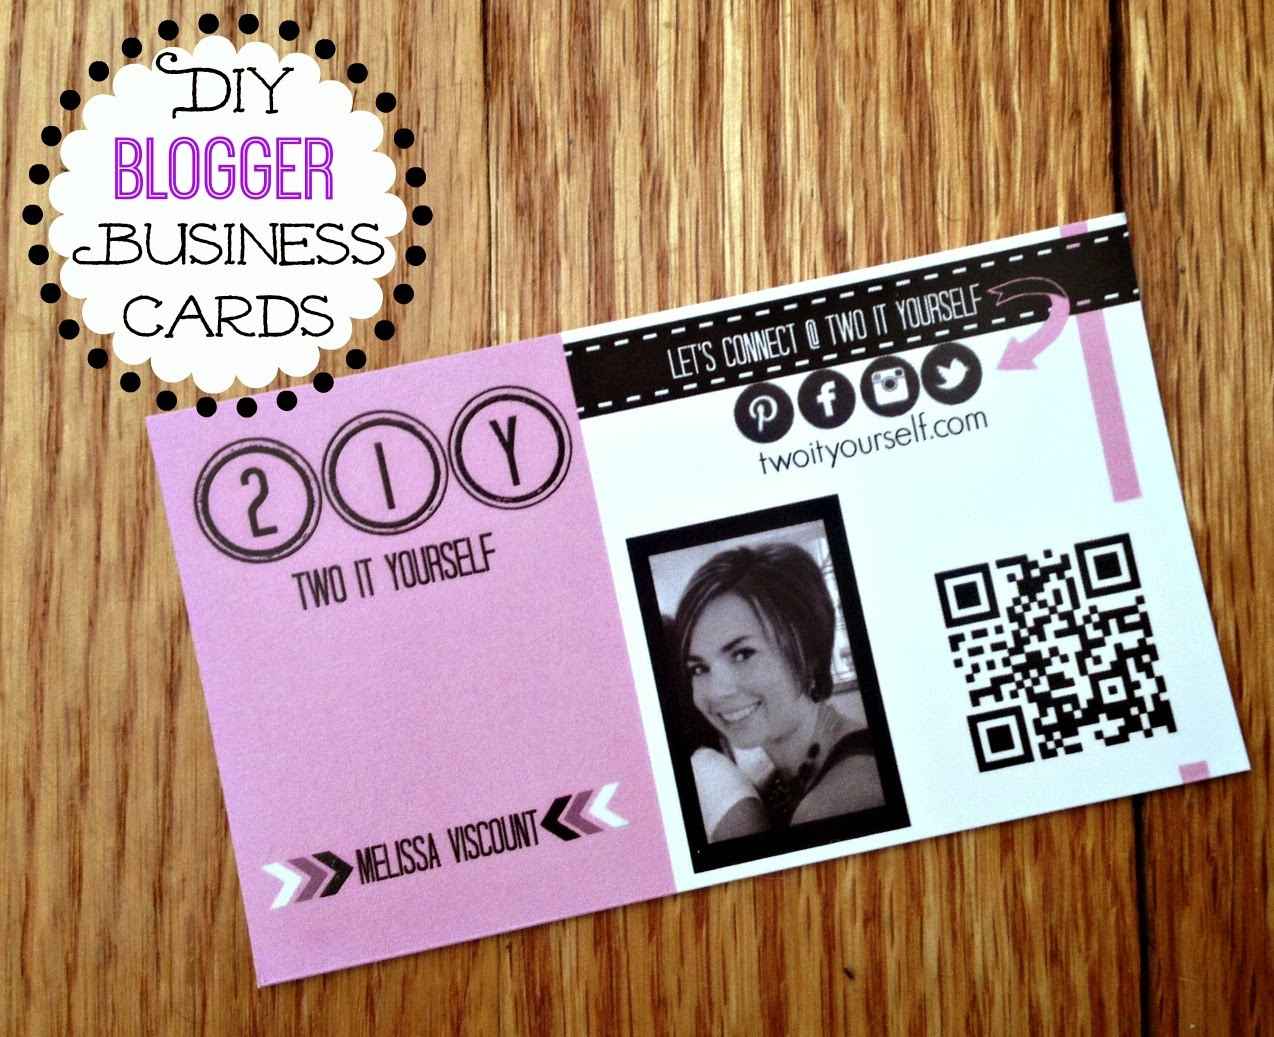 http://www.twoityourself.com/2014/02/diy-blogger-business-card-ideas.html